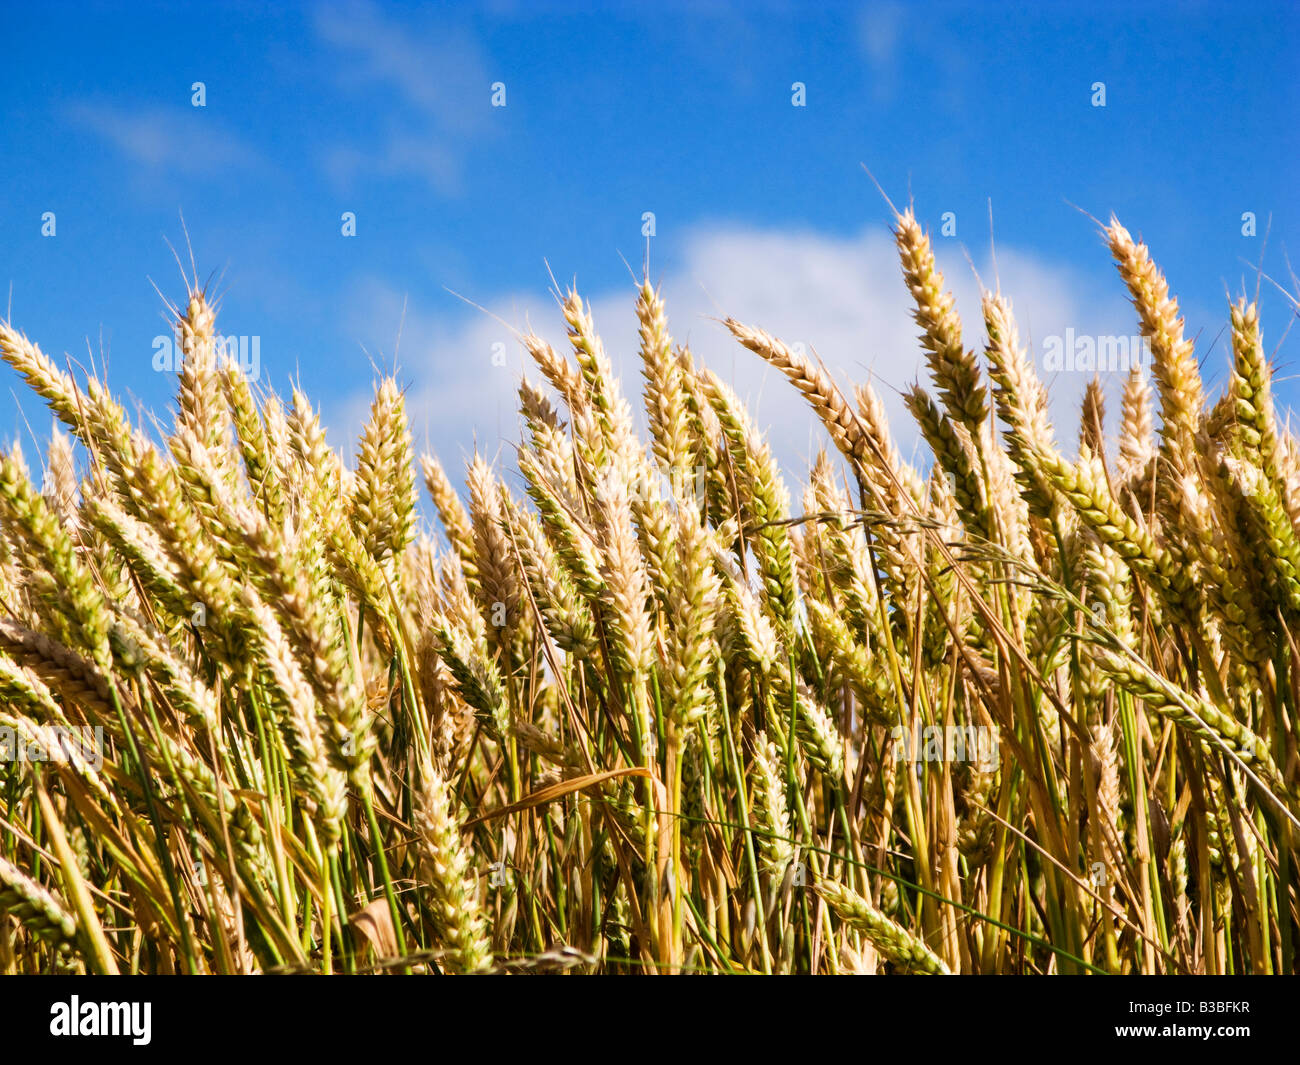 Wheat closeup - Stock Image